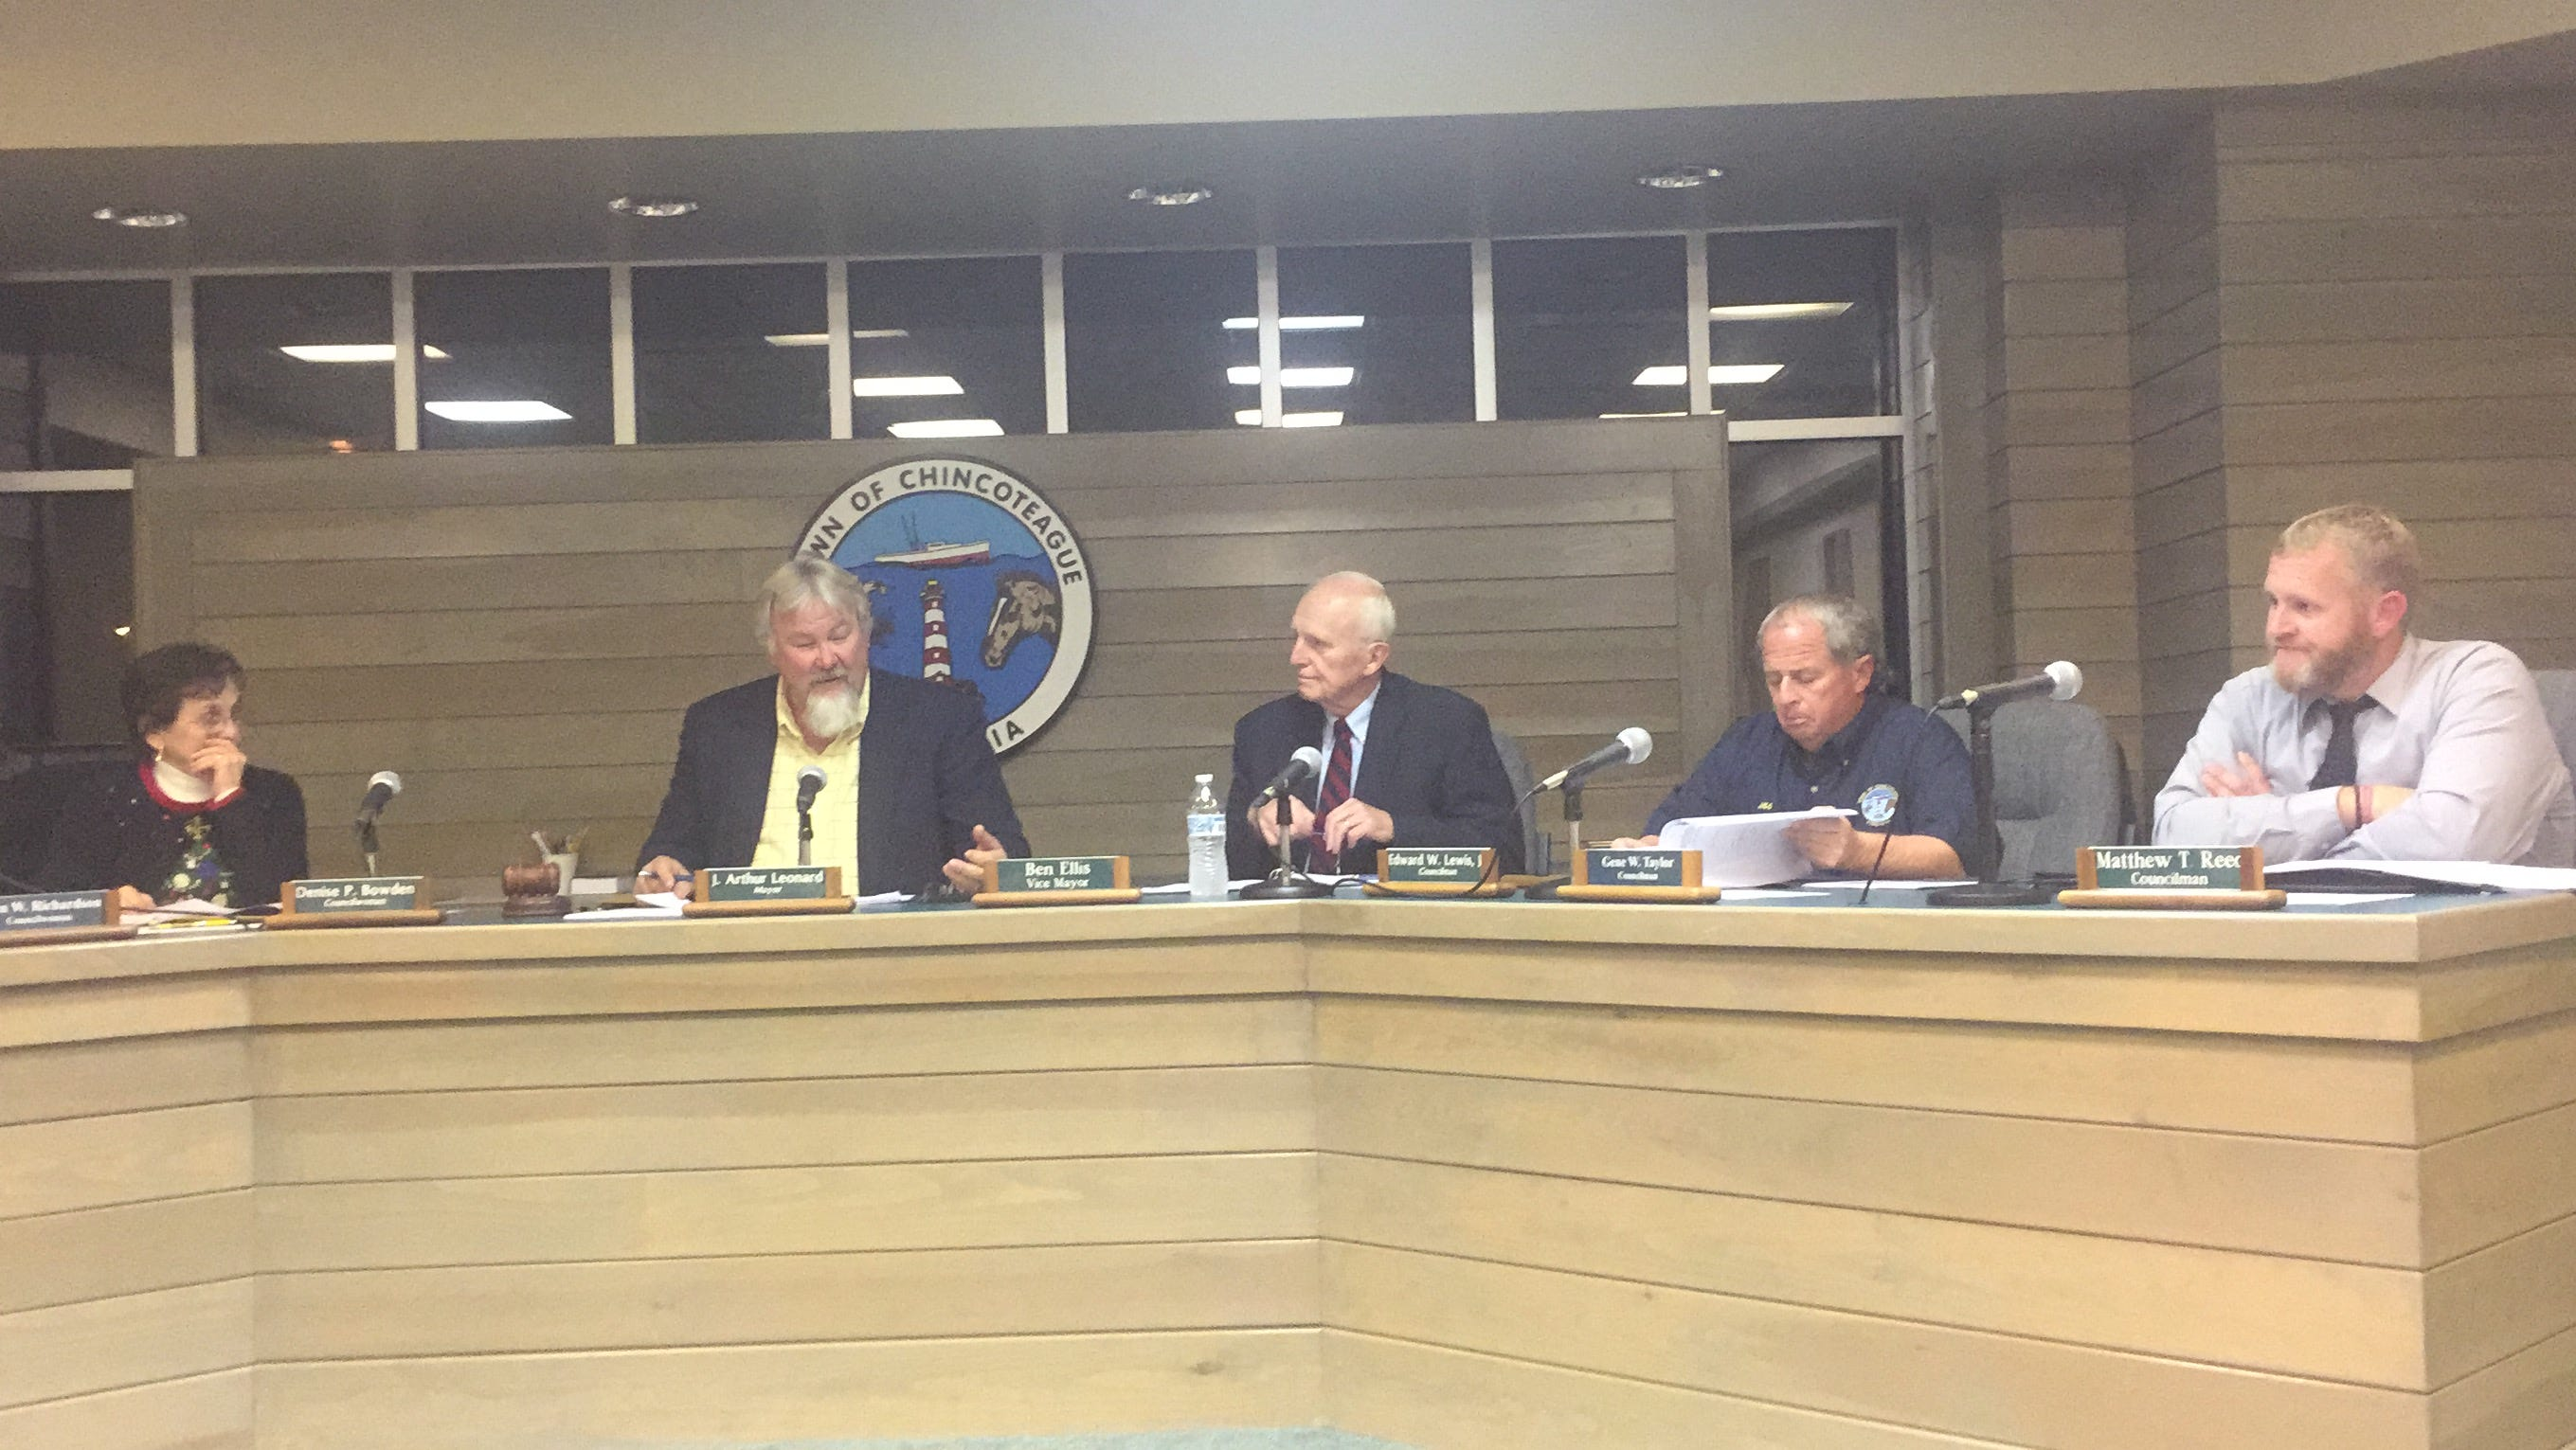 Sewer extension request puts Chincoteague campground sale on hold